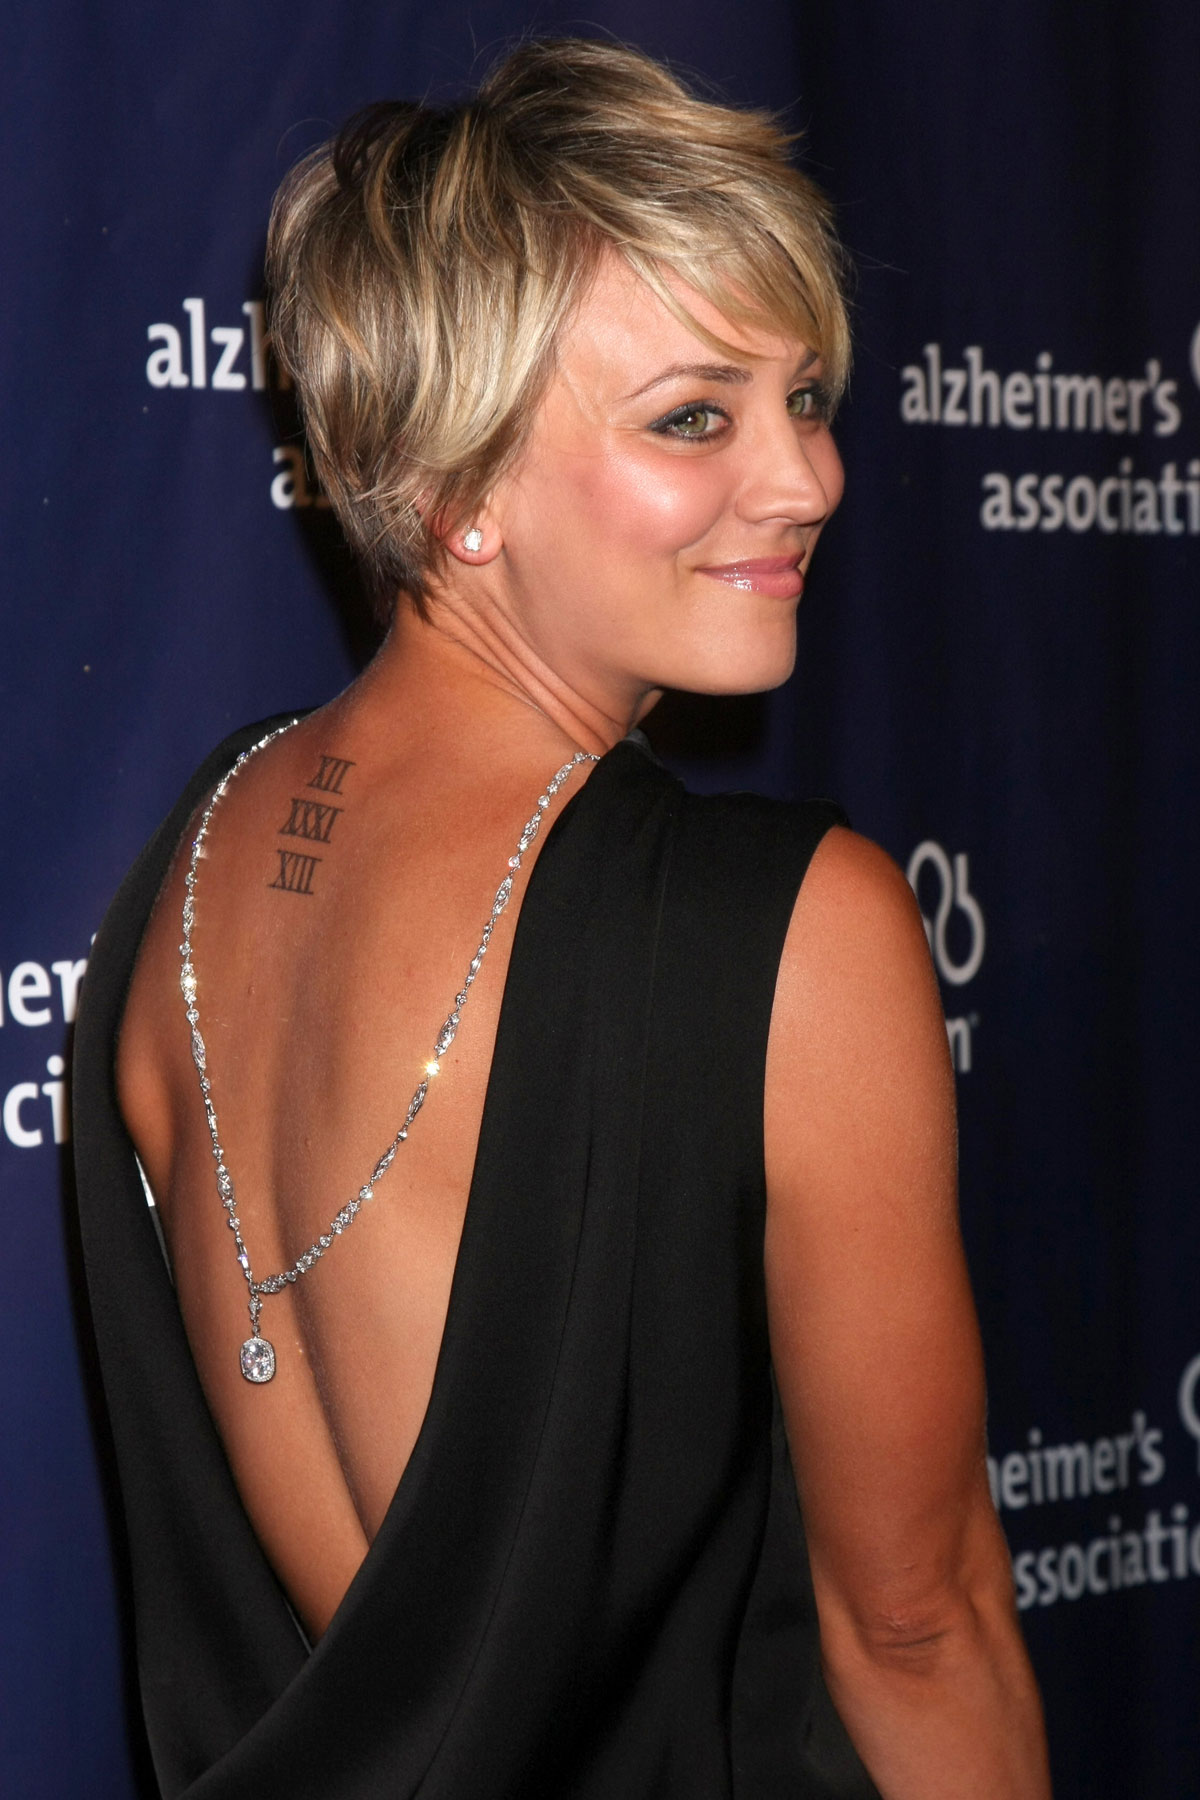 Kaley Cuoco's tattoo before she covered it up